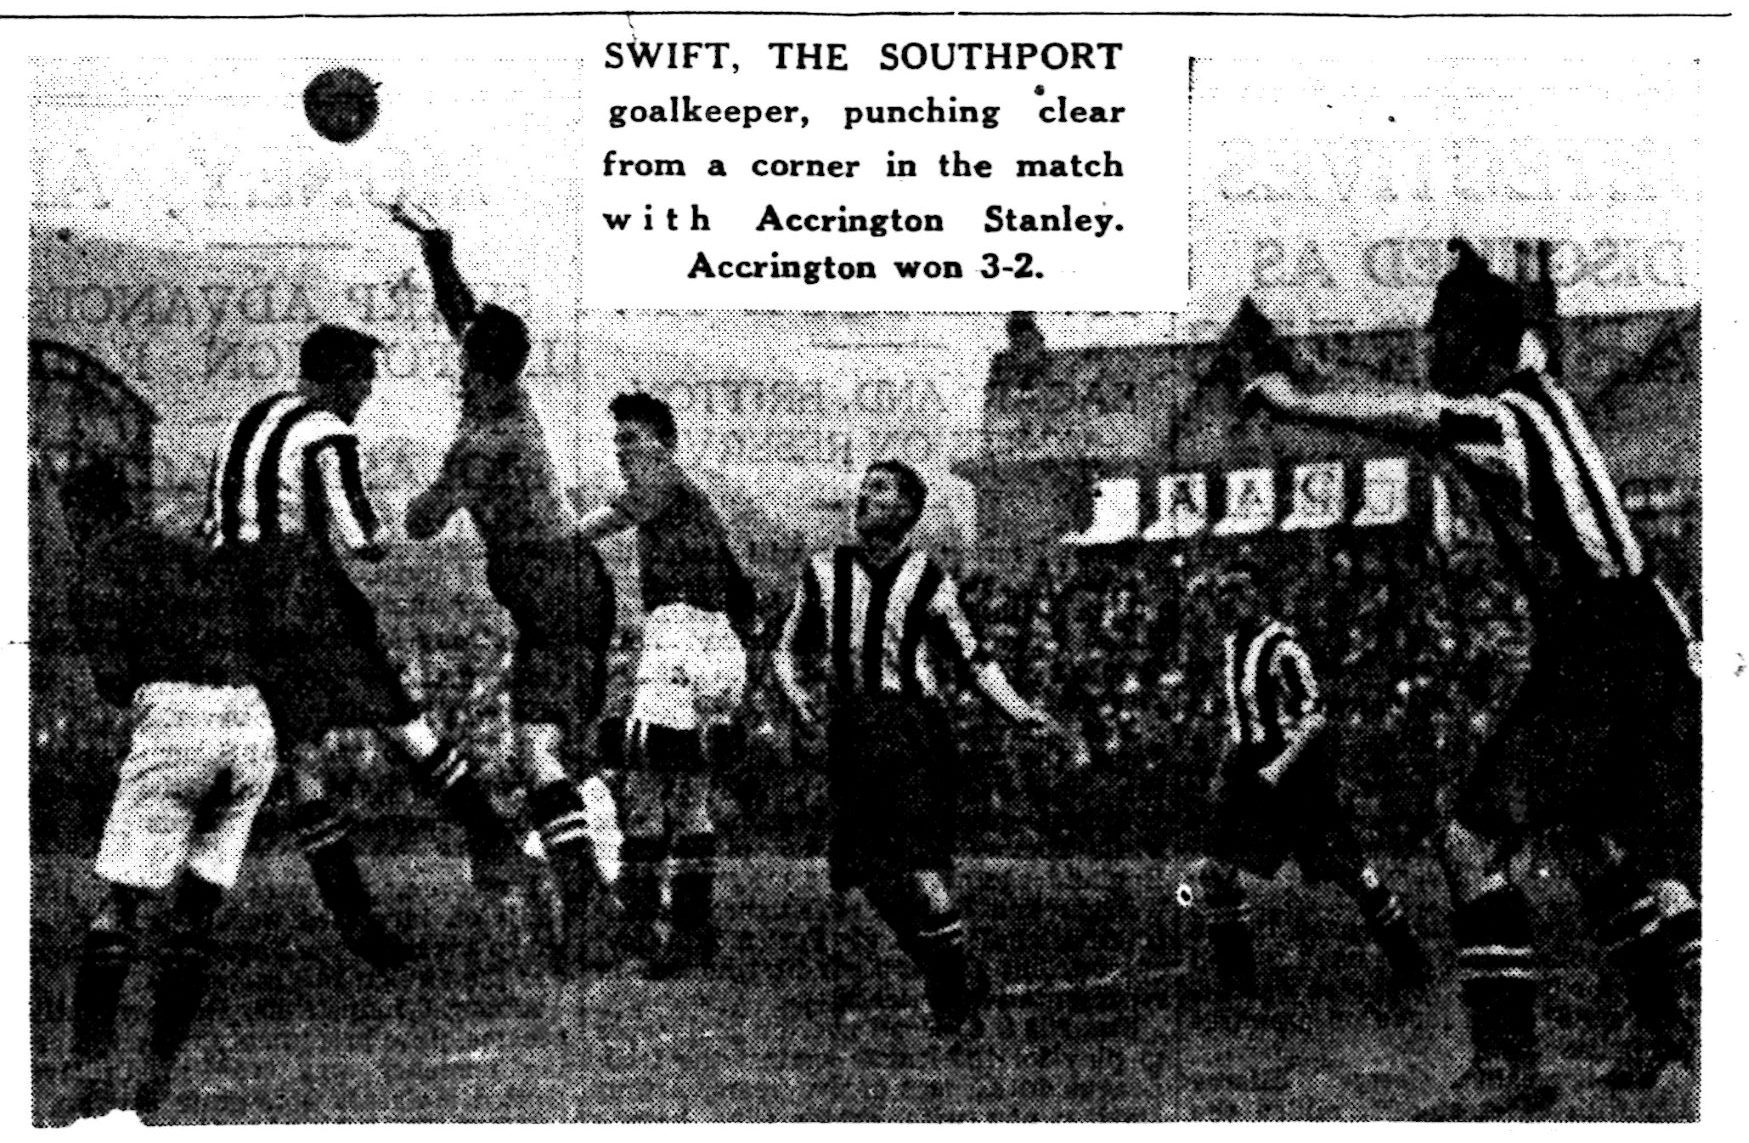 Swift, the southport goalkeeper, punching clear from a corner in the match with Accrington Stanley.